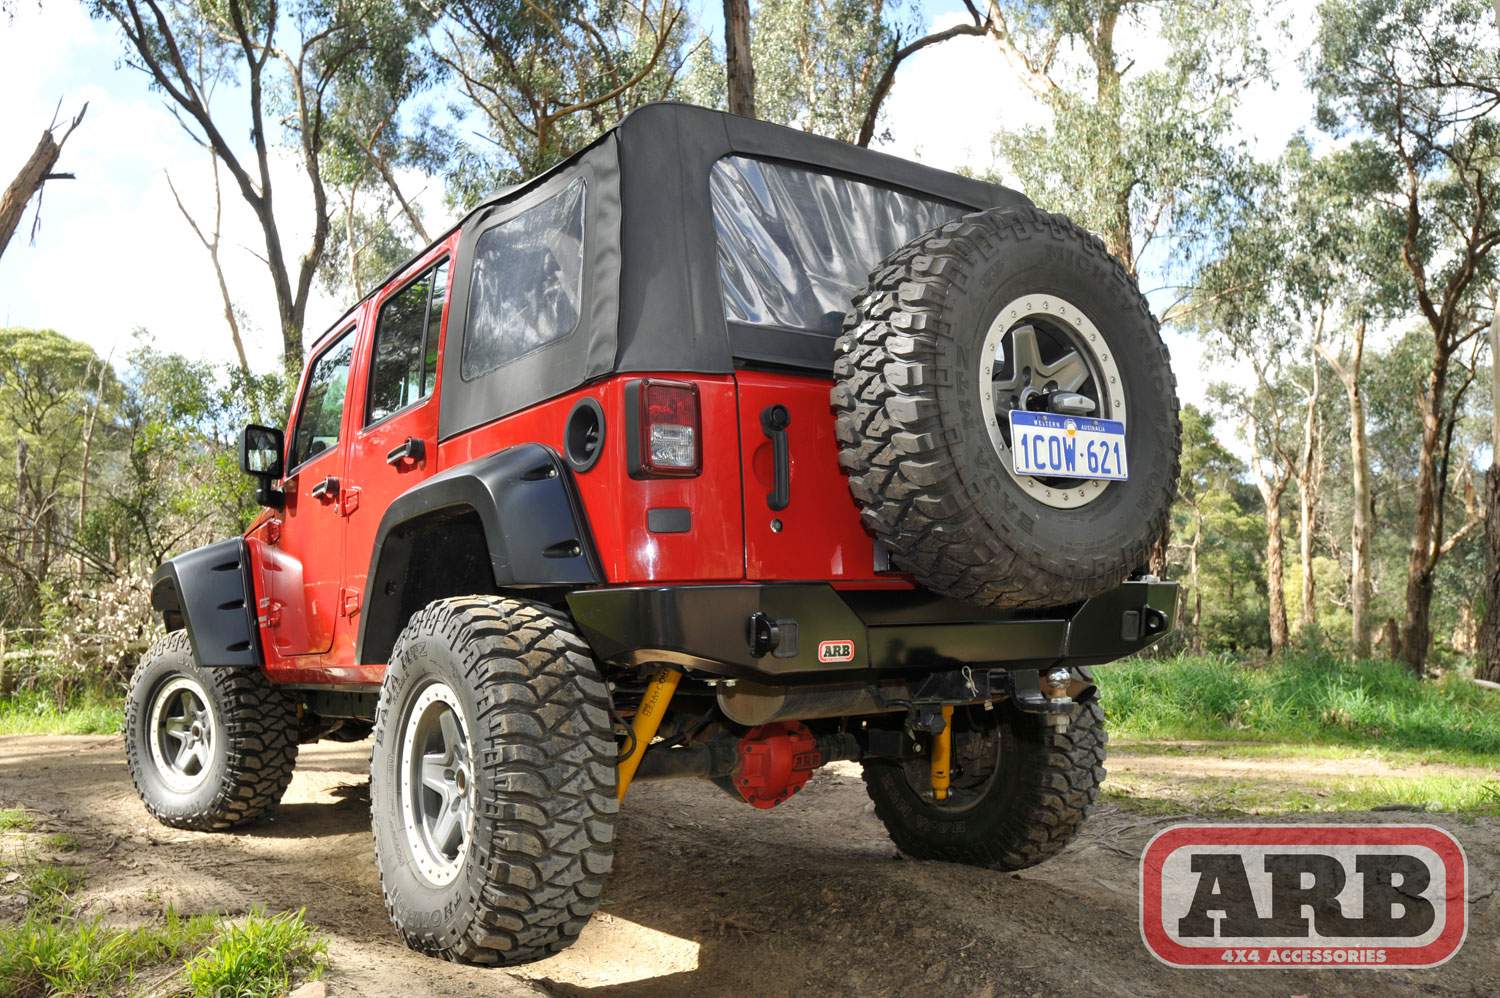 Rear Bumper With Tyre Carrier Option Arb 5650360 Jeepey Jeep White Sahara Lifted Tire And Led Tail Lights Jm 02594